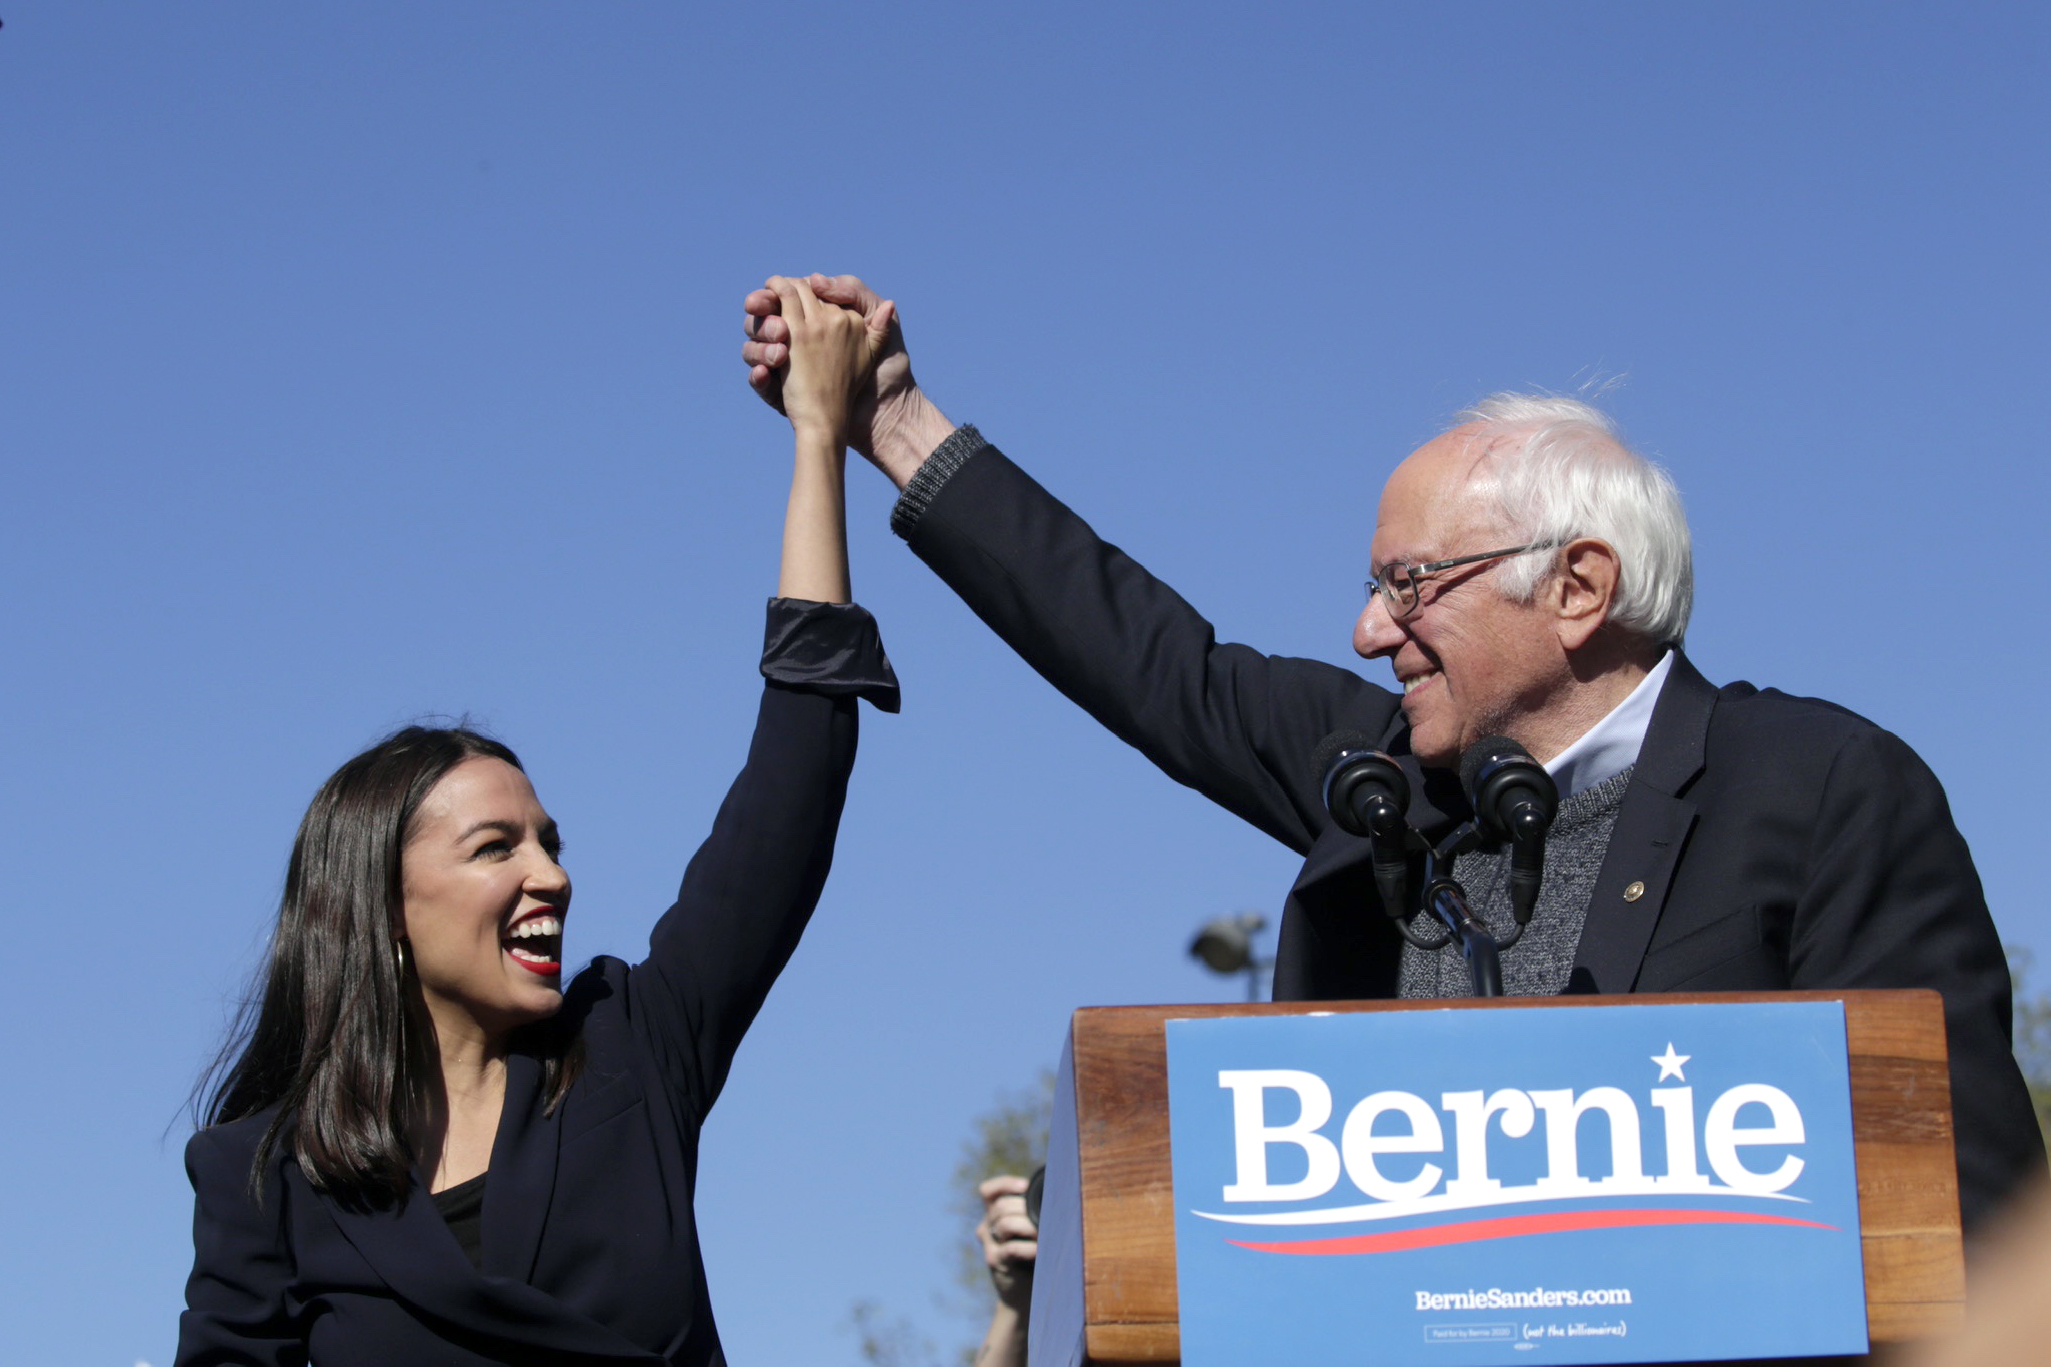 Bernie Sanders Hopes AOC Will Work in His Administration if He's Elected President